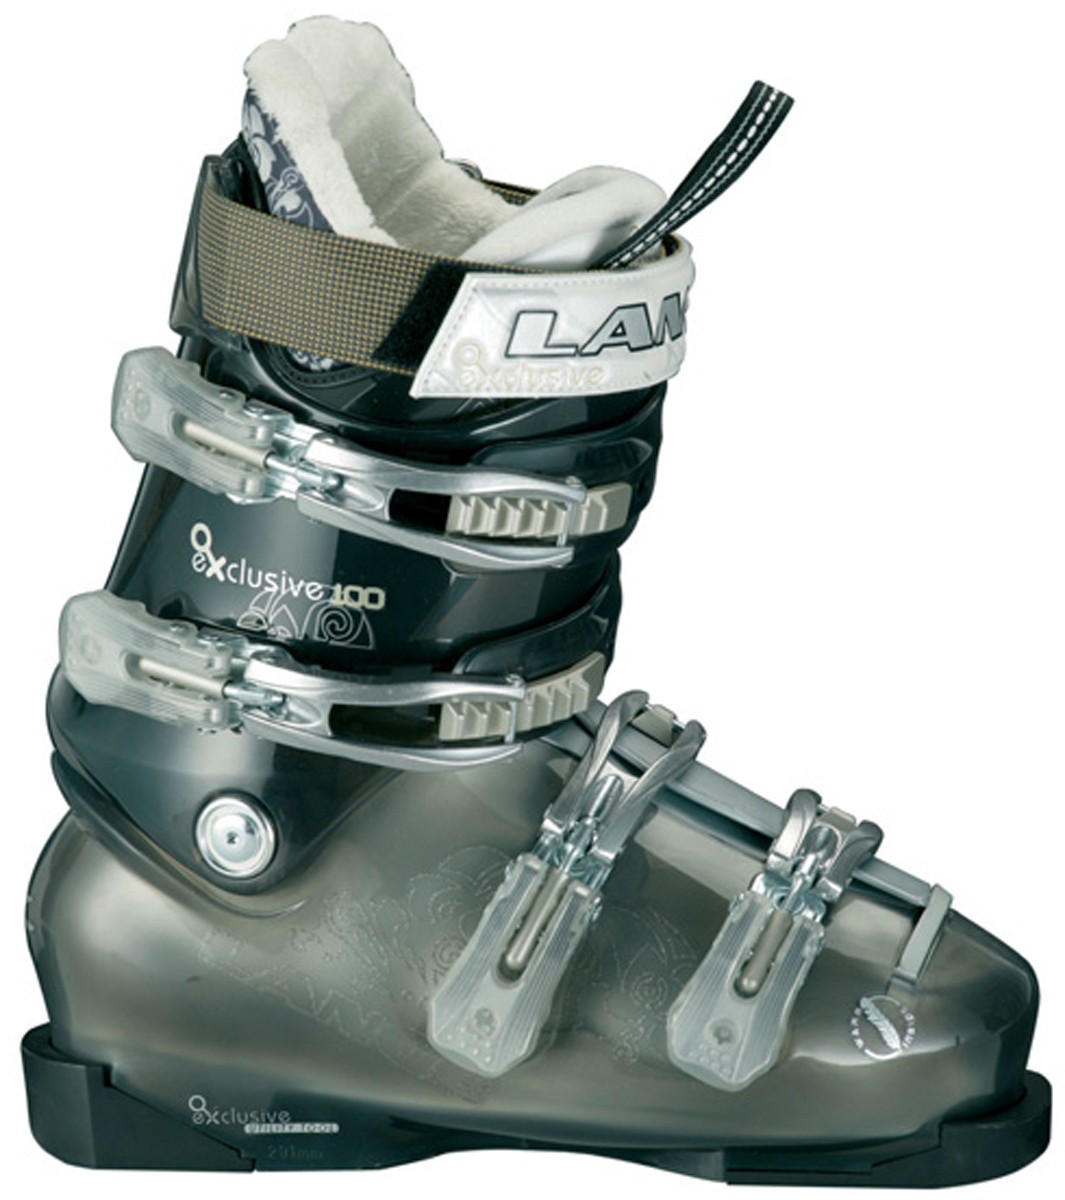 Ski The Lange Exclusive 100 ski boot returns unchanged except for color. Here is a boot that allows strong intermediate to expert women to cruise comfortably anywhere on the mountain. The Exclusive 100 fits low to mid-volume feet with moderately low insteps. Flex index: 100. After conversing with one of the employees, Katie, I was told that the big improvement is the liner. The foam is situated better where it should be to offer the best hold down and comfort. - $298.95